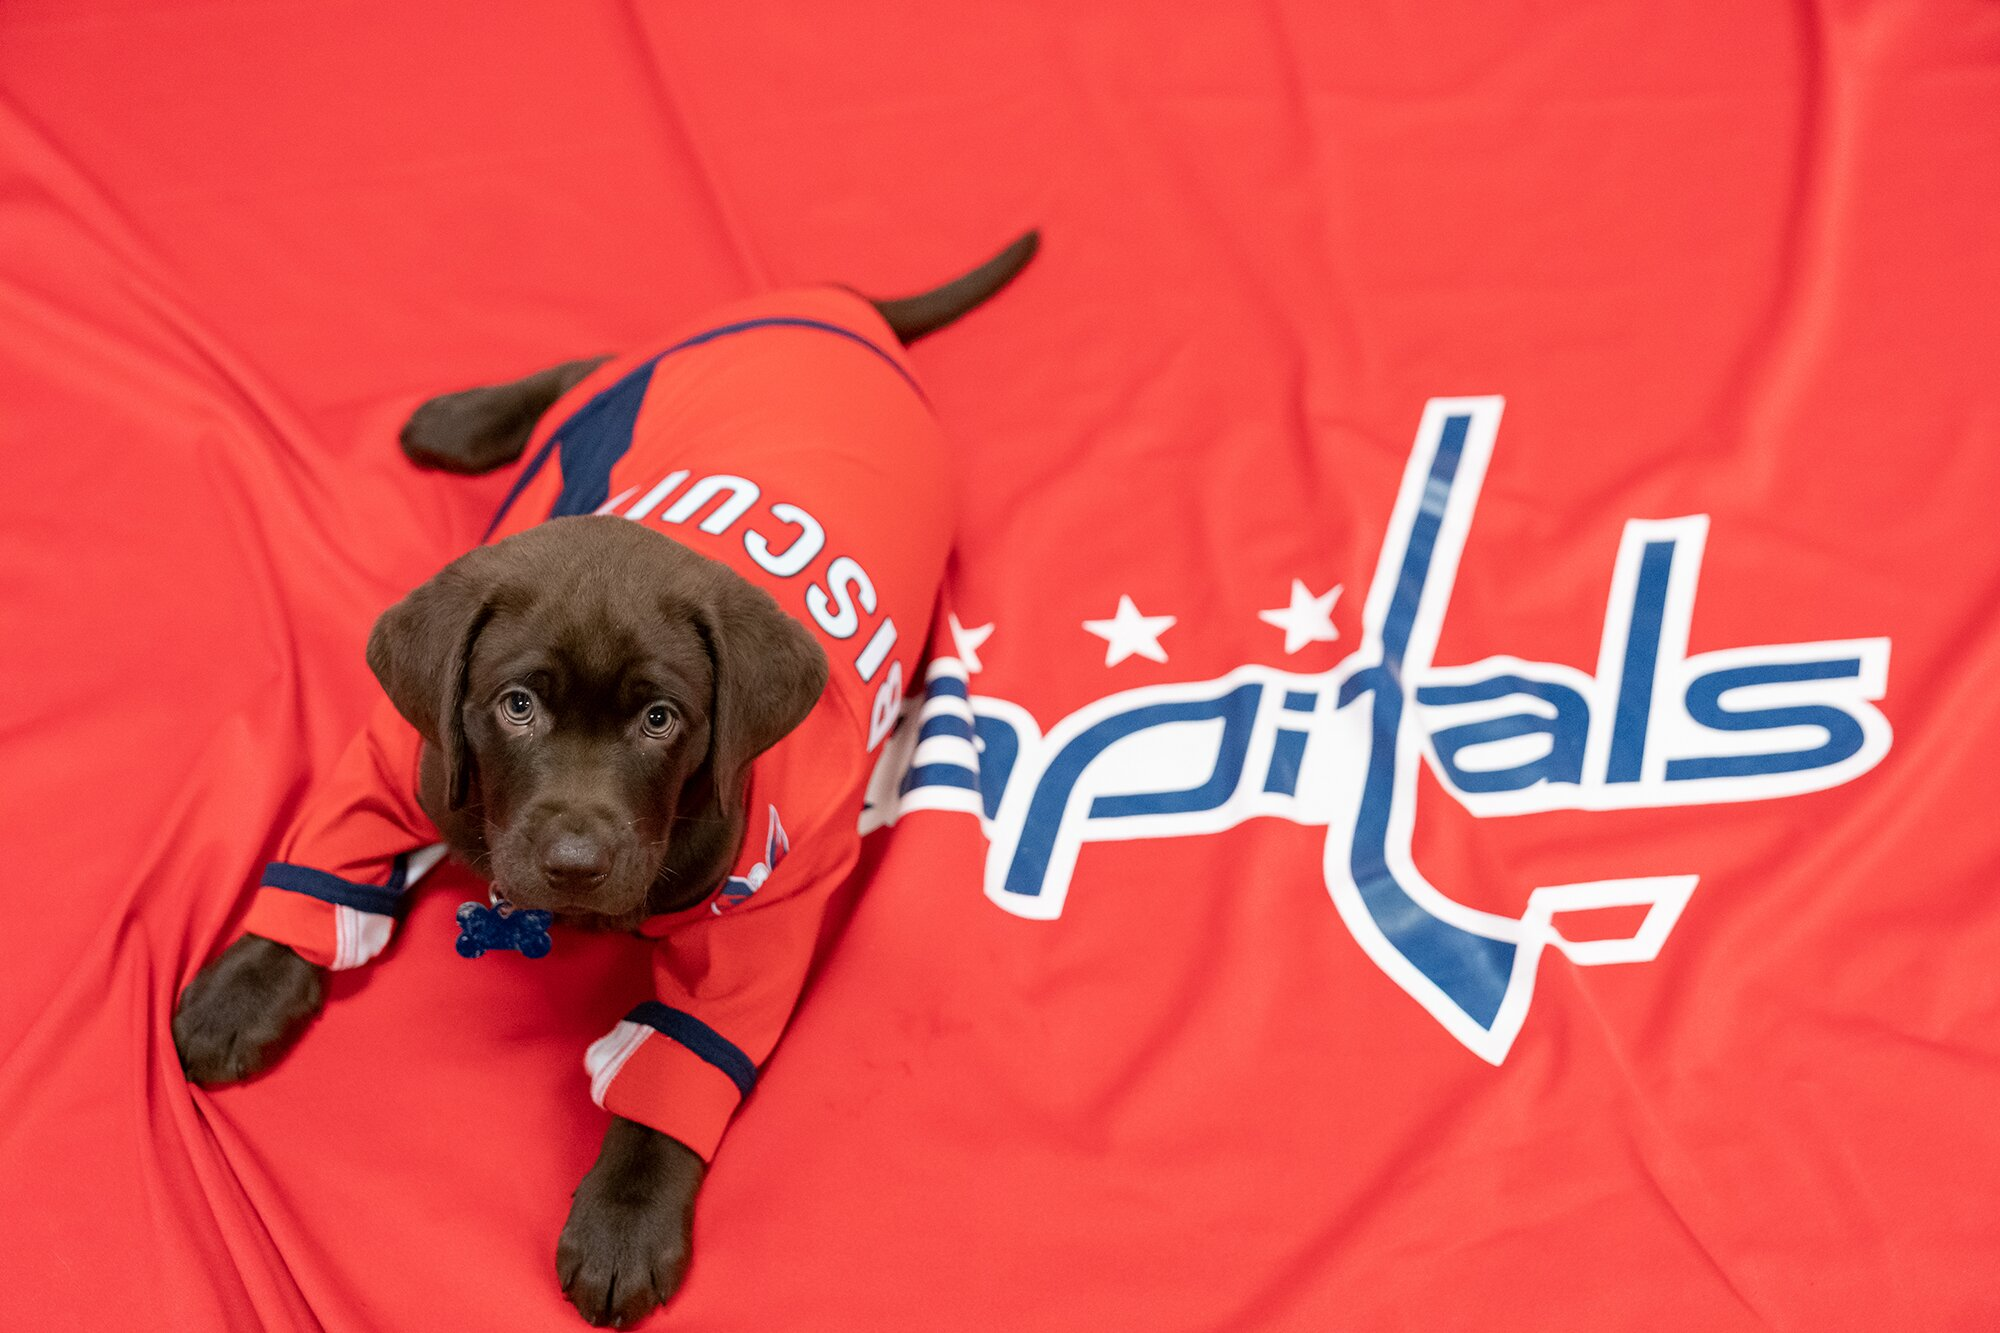 NHL Washington Capitals to Train Future Service Dog 'Biscuit' for Veteran or First Responder